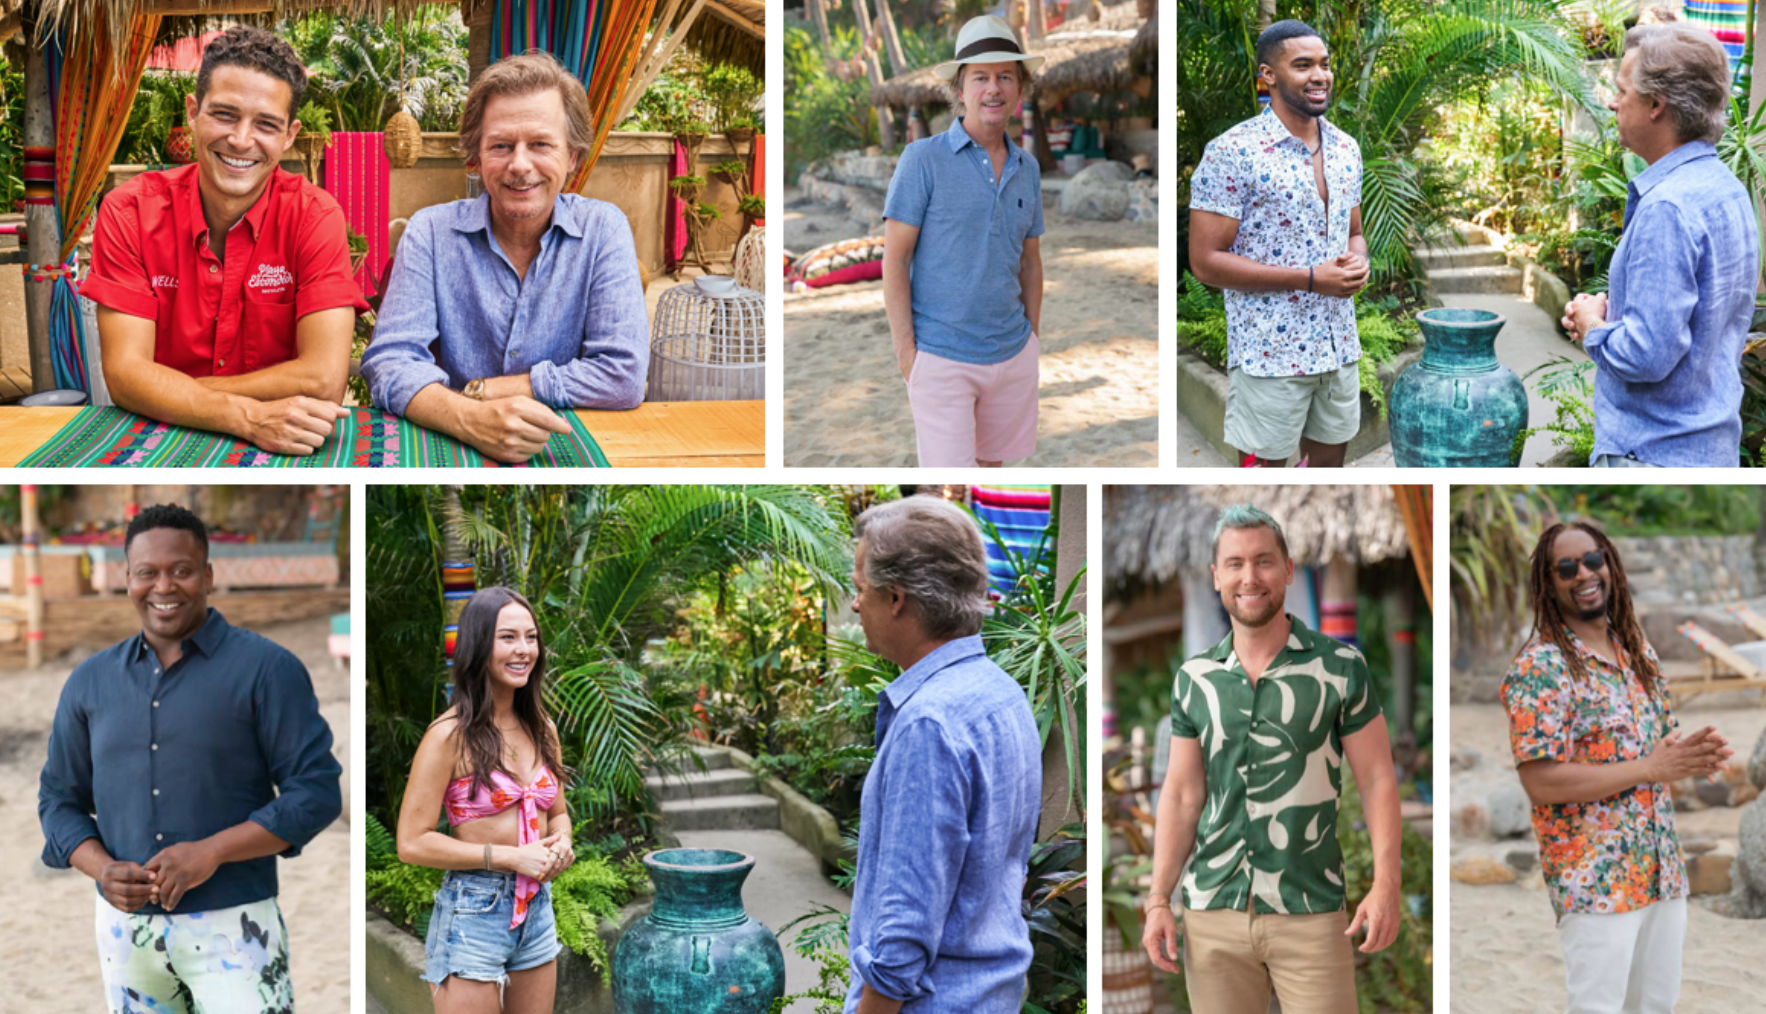 Bachelor in Paradise 7 - USA - Episodes - *Sleuthing Spoilers*  Screen_Shot_2021-07-29_at_12.52.10_PM